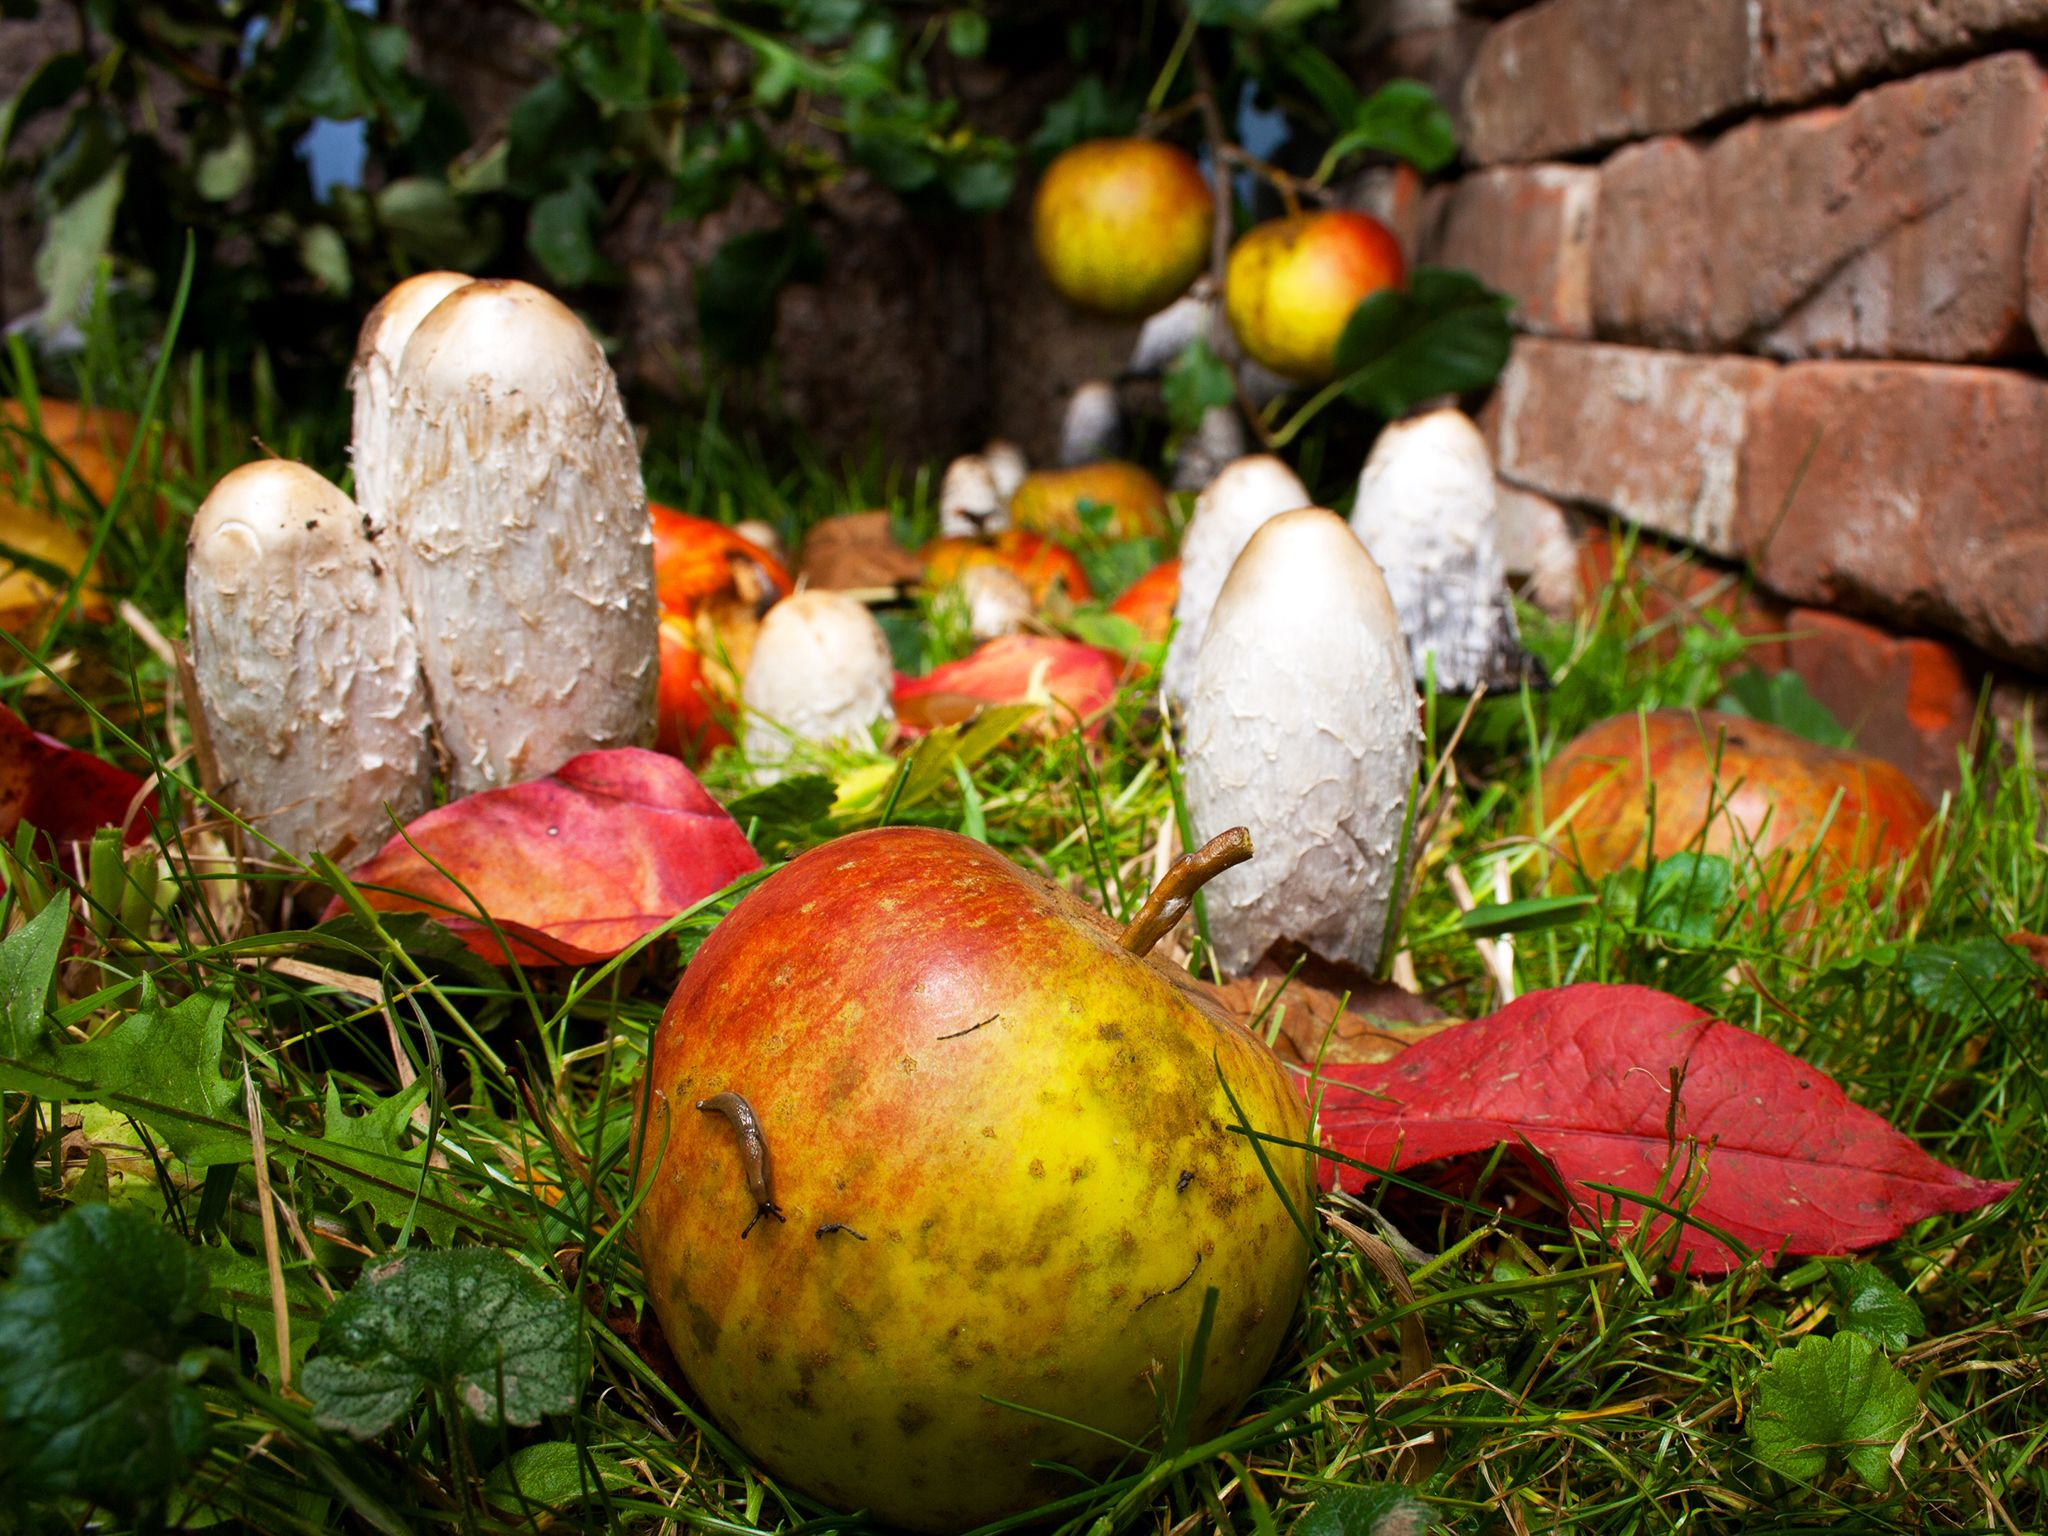 Mushrooms growing in the garden. This image is from Secret Garden. [Photo of the day - January 2015]